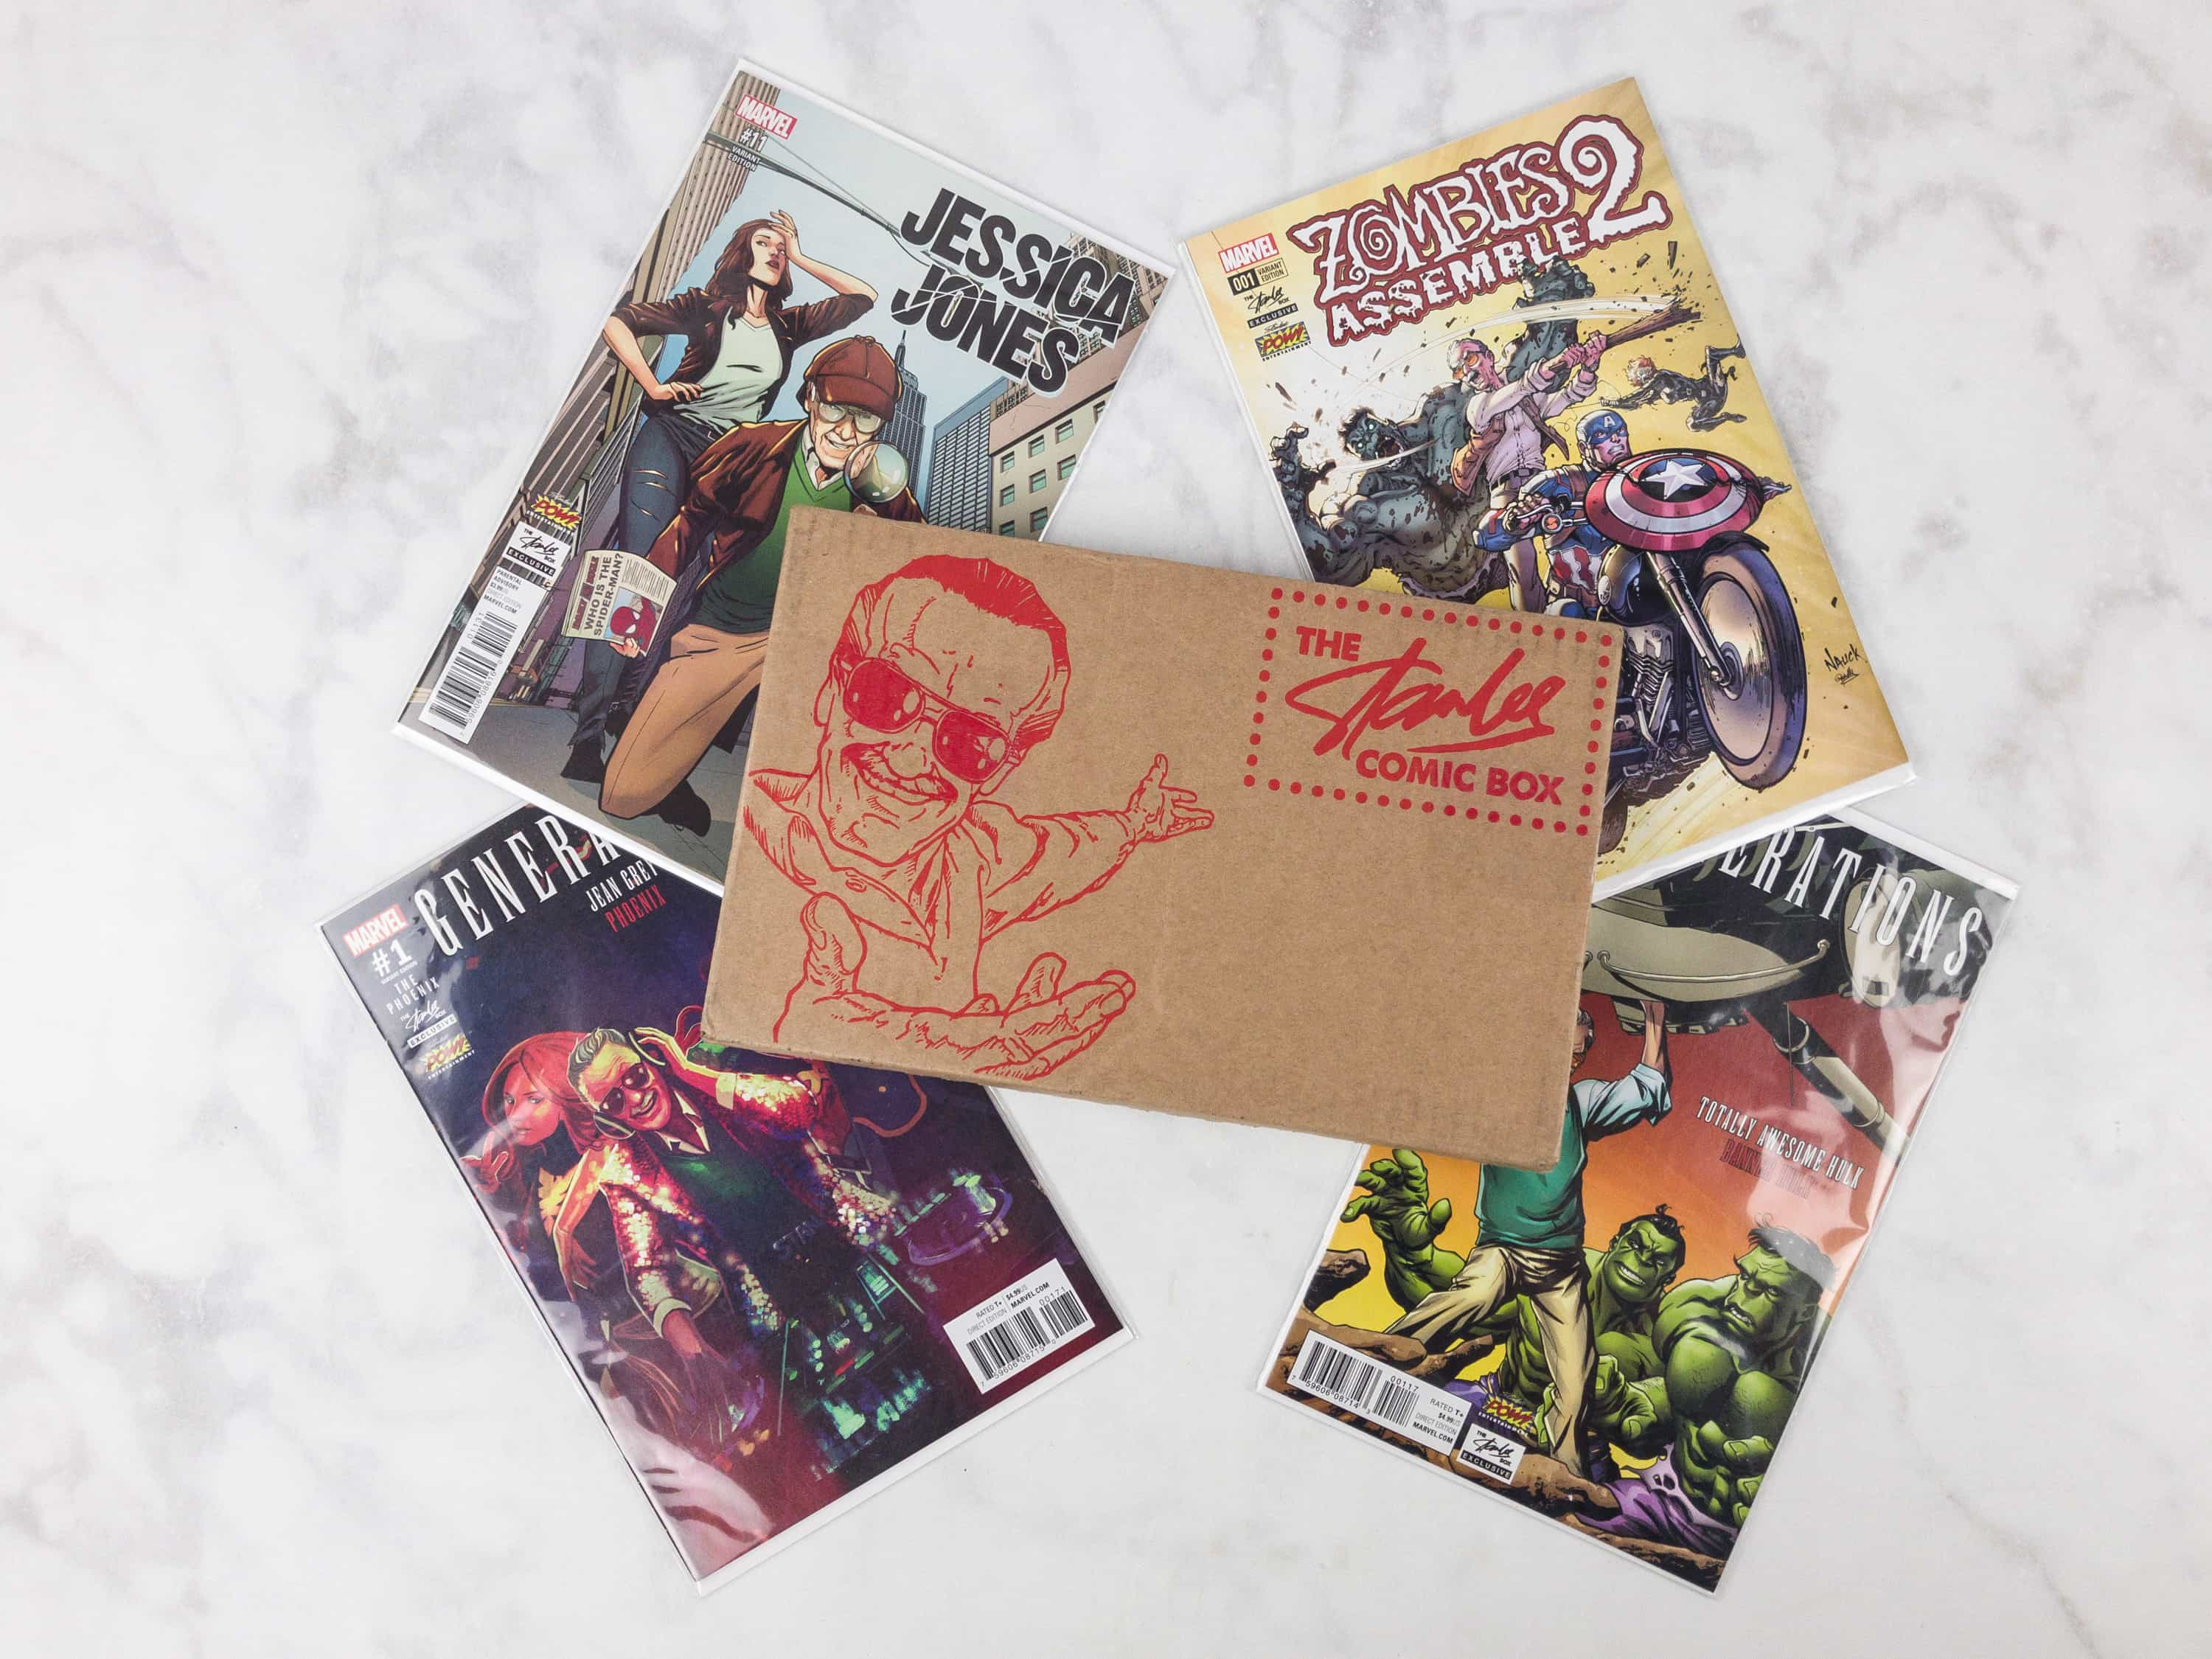 The Stan Lee Comicbook Box Giveaway – September 2017 box!